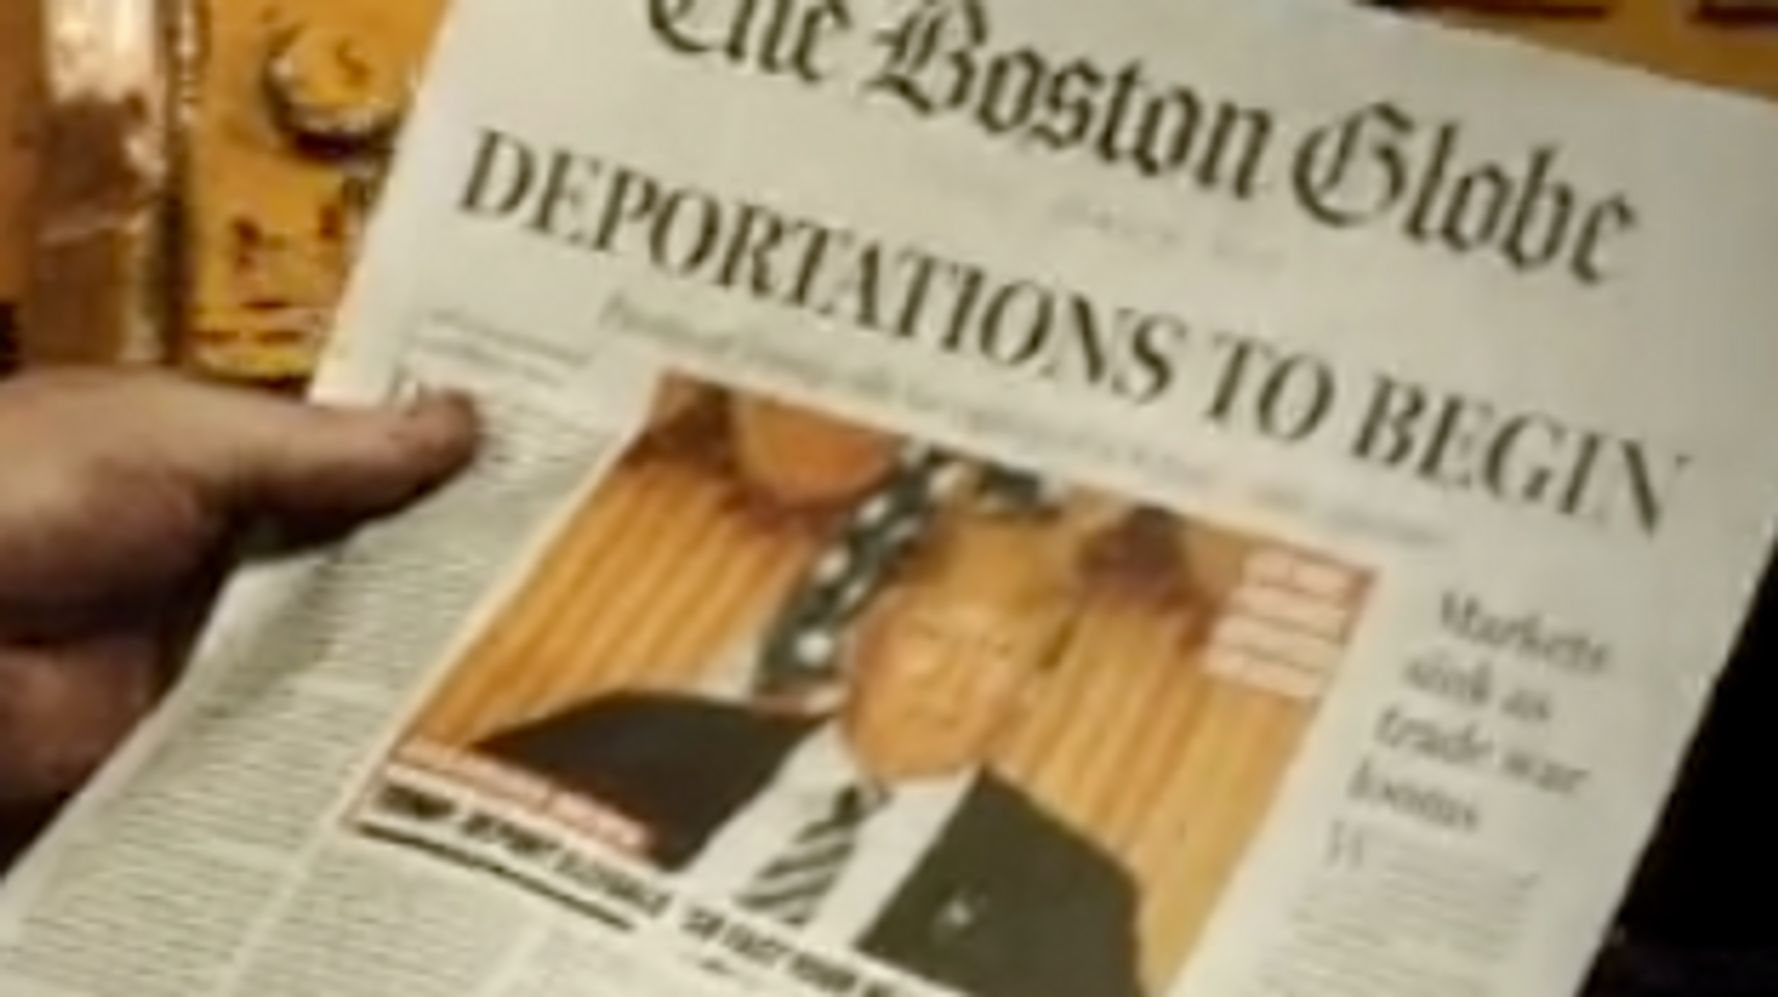 Boston Globe's Spoof 2016 Cover Imagining Trump Presidency Goes